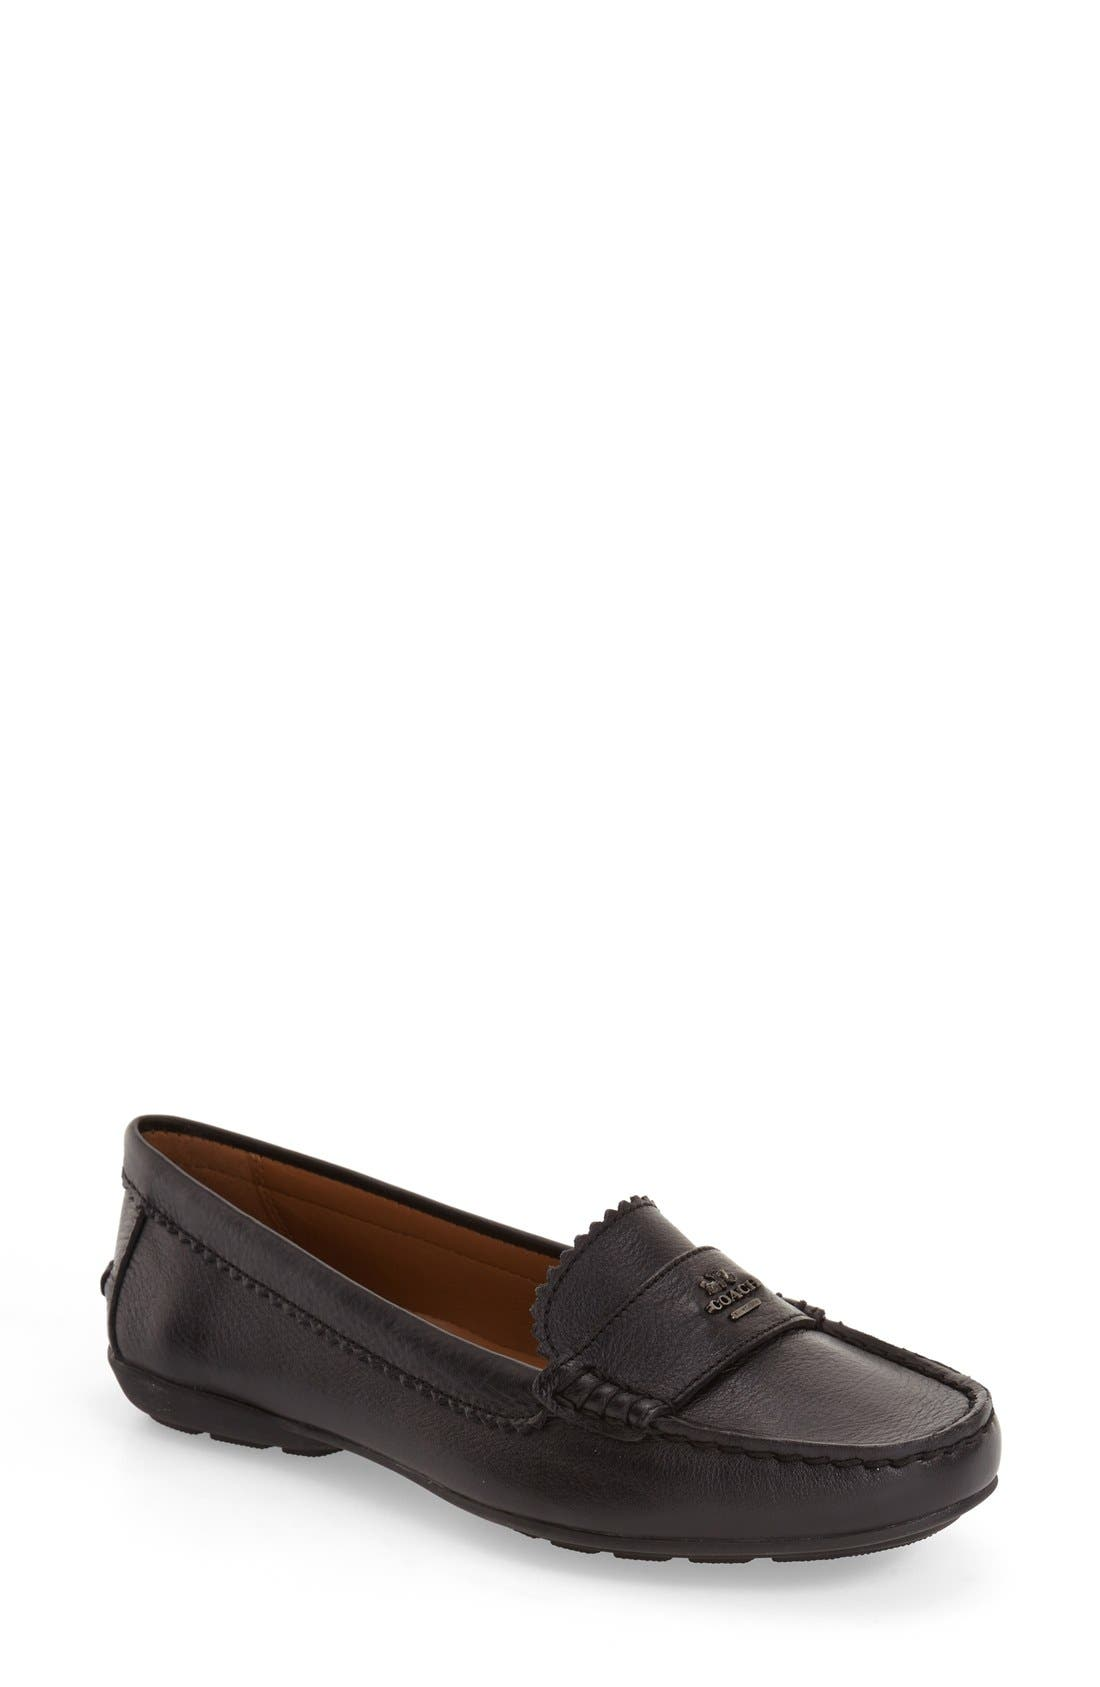 Alternate Image 1 Selected - COACH 'Odette' Moccasin Loafer (Women)